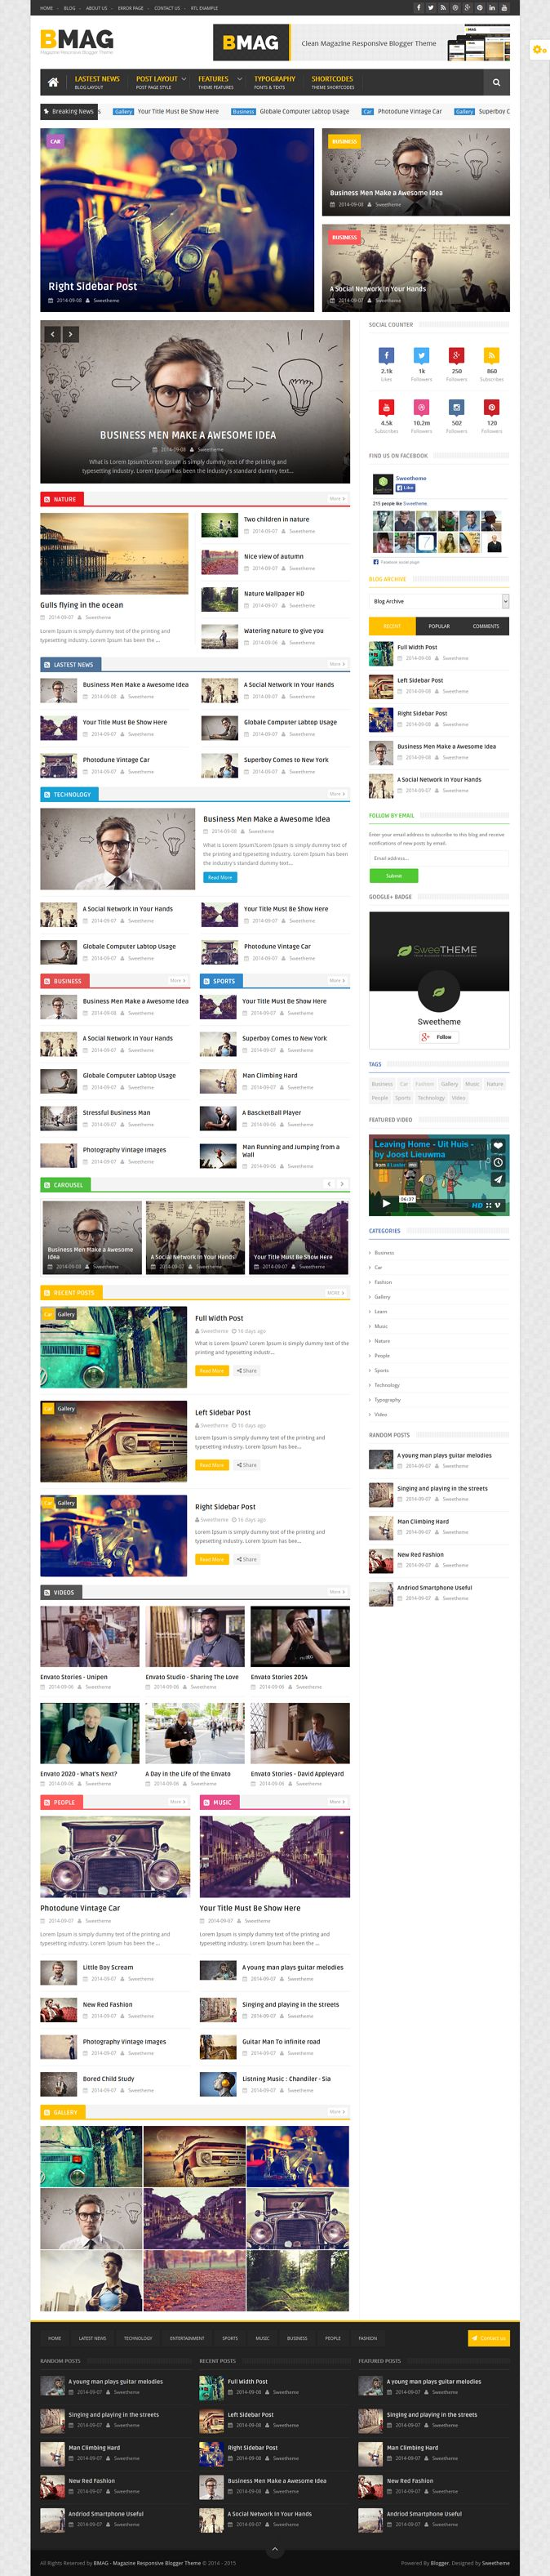 BMAG is a Magazine Responsive Blogger Template, it is clean and compatible with many devices, It's perfect for creating your magazine or blog using blogspot, no need to coding as it is very customizable template.